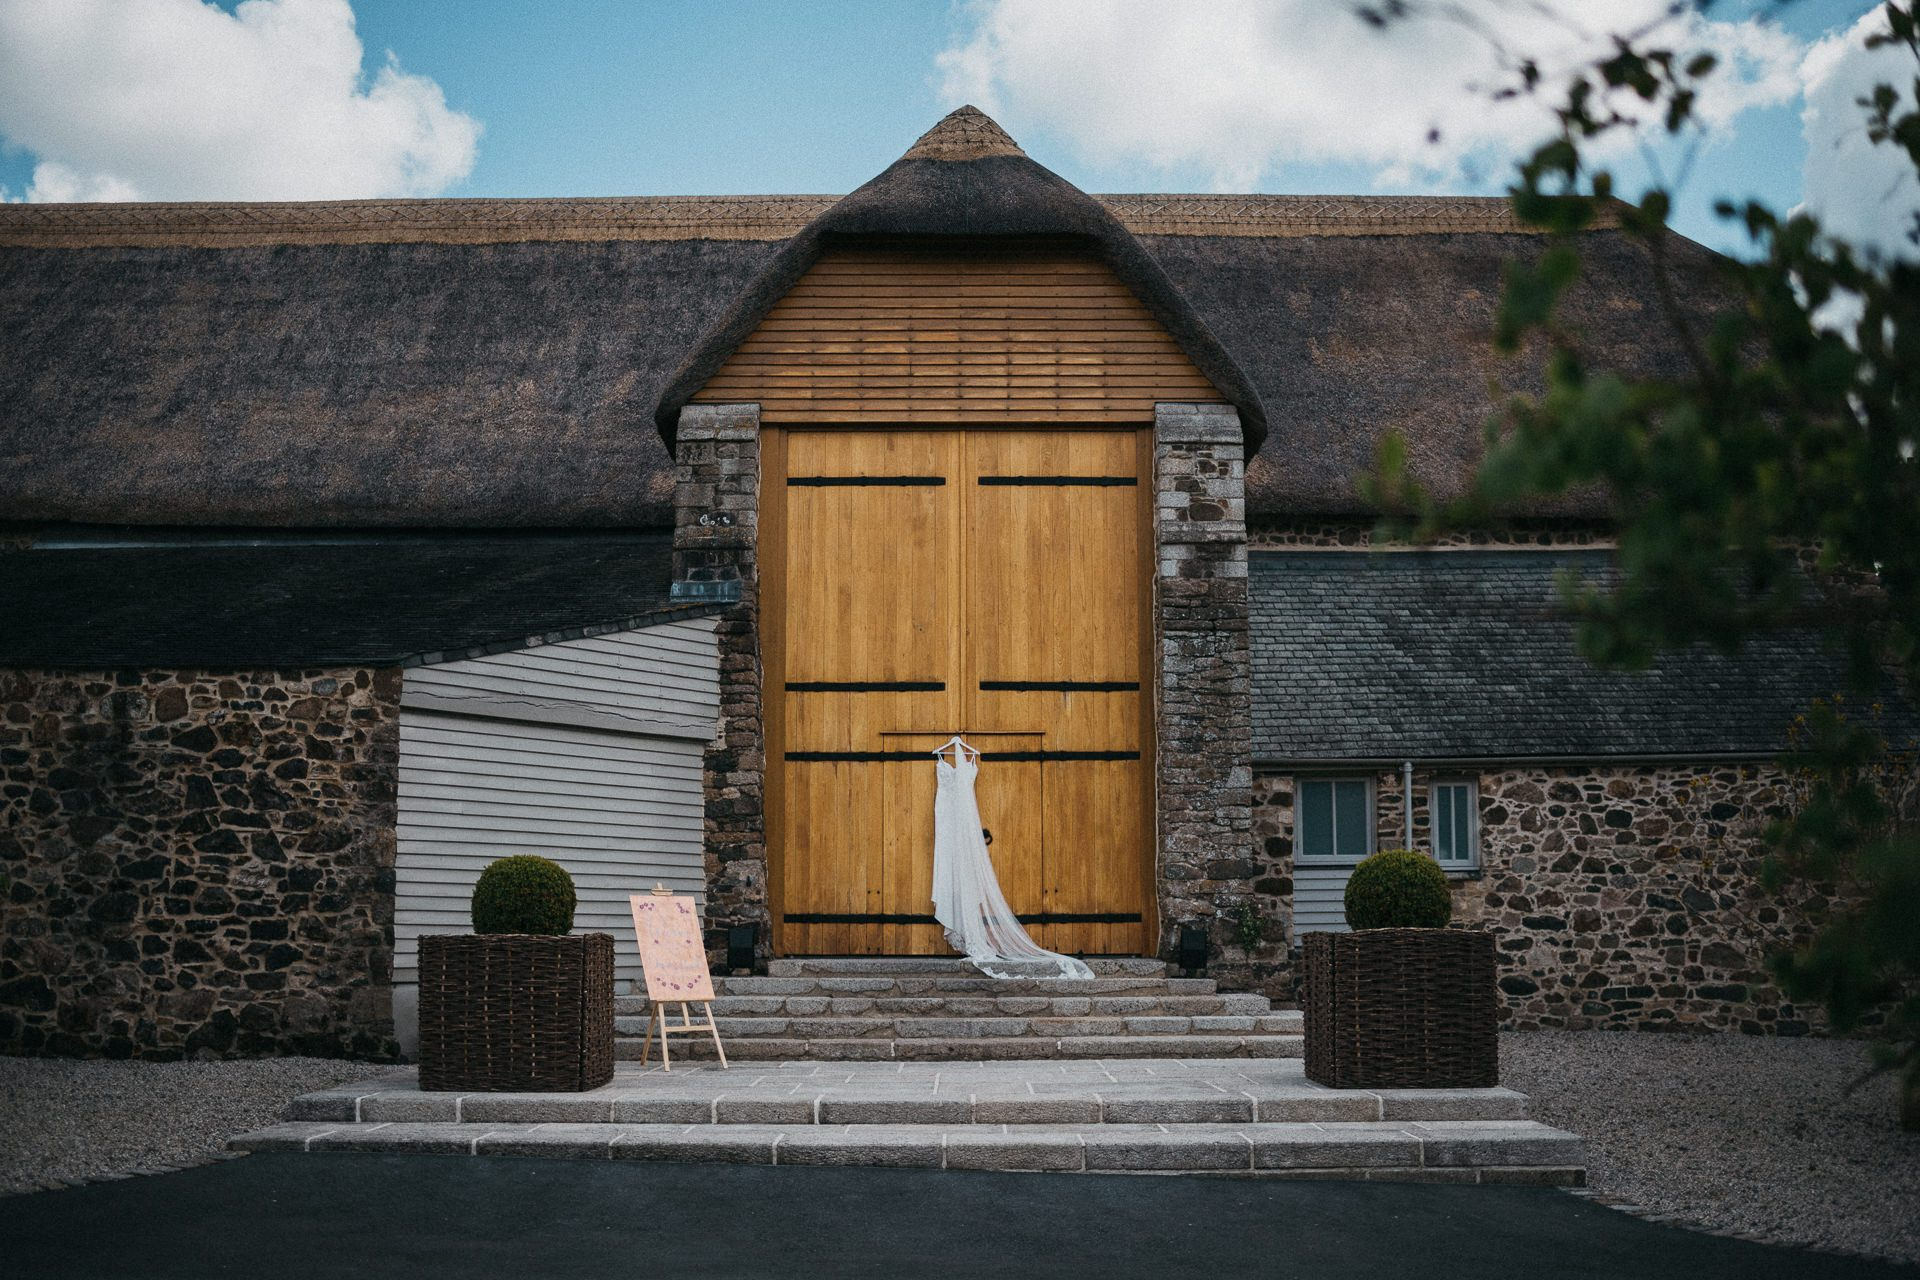 0026-DEVON-SOMERSET-WEDDING-PHOTOGRAPHER-0088-BEST-OF-2019-LOUISE-MAY-DEVON-SOMERSET-WEDDING-PHOTOGRAPHY-LM1_6298